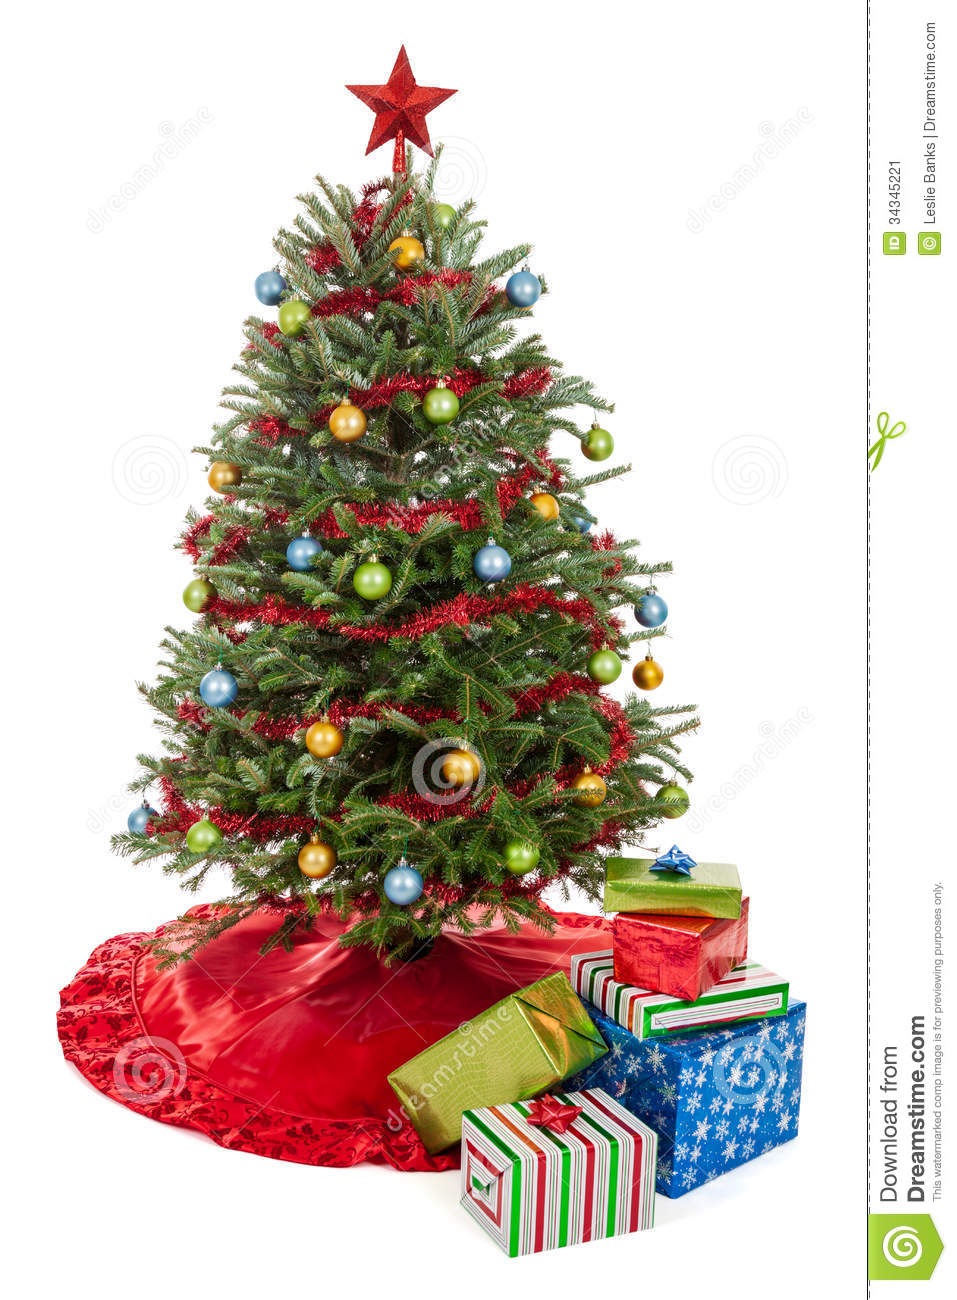 Christmas tree with presents stock image image 34345221 for How to decorate a small white christmas tree